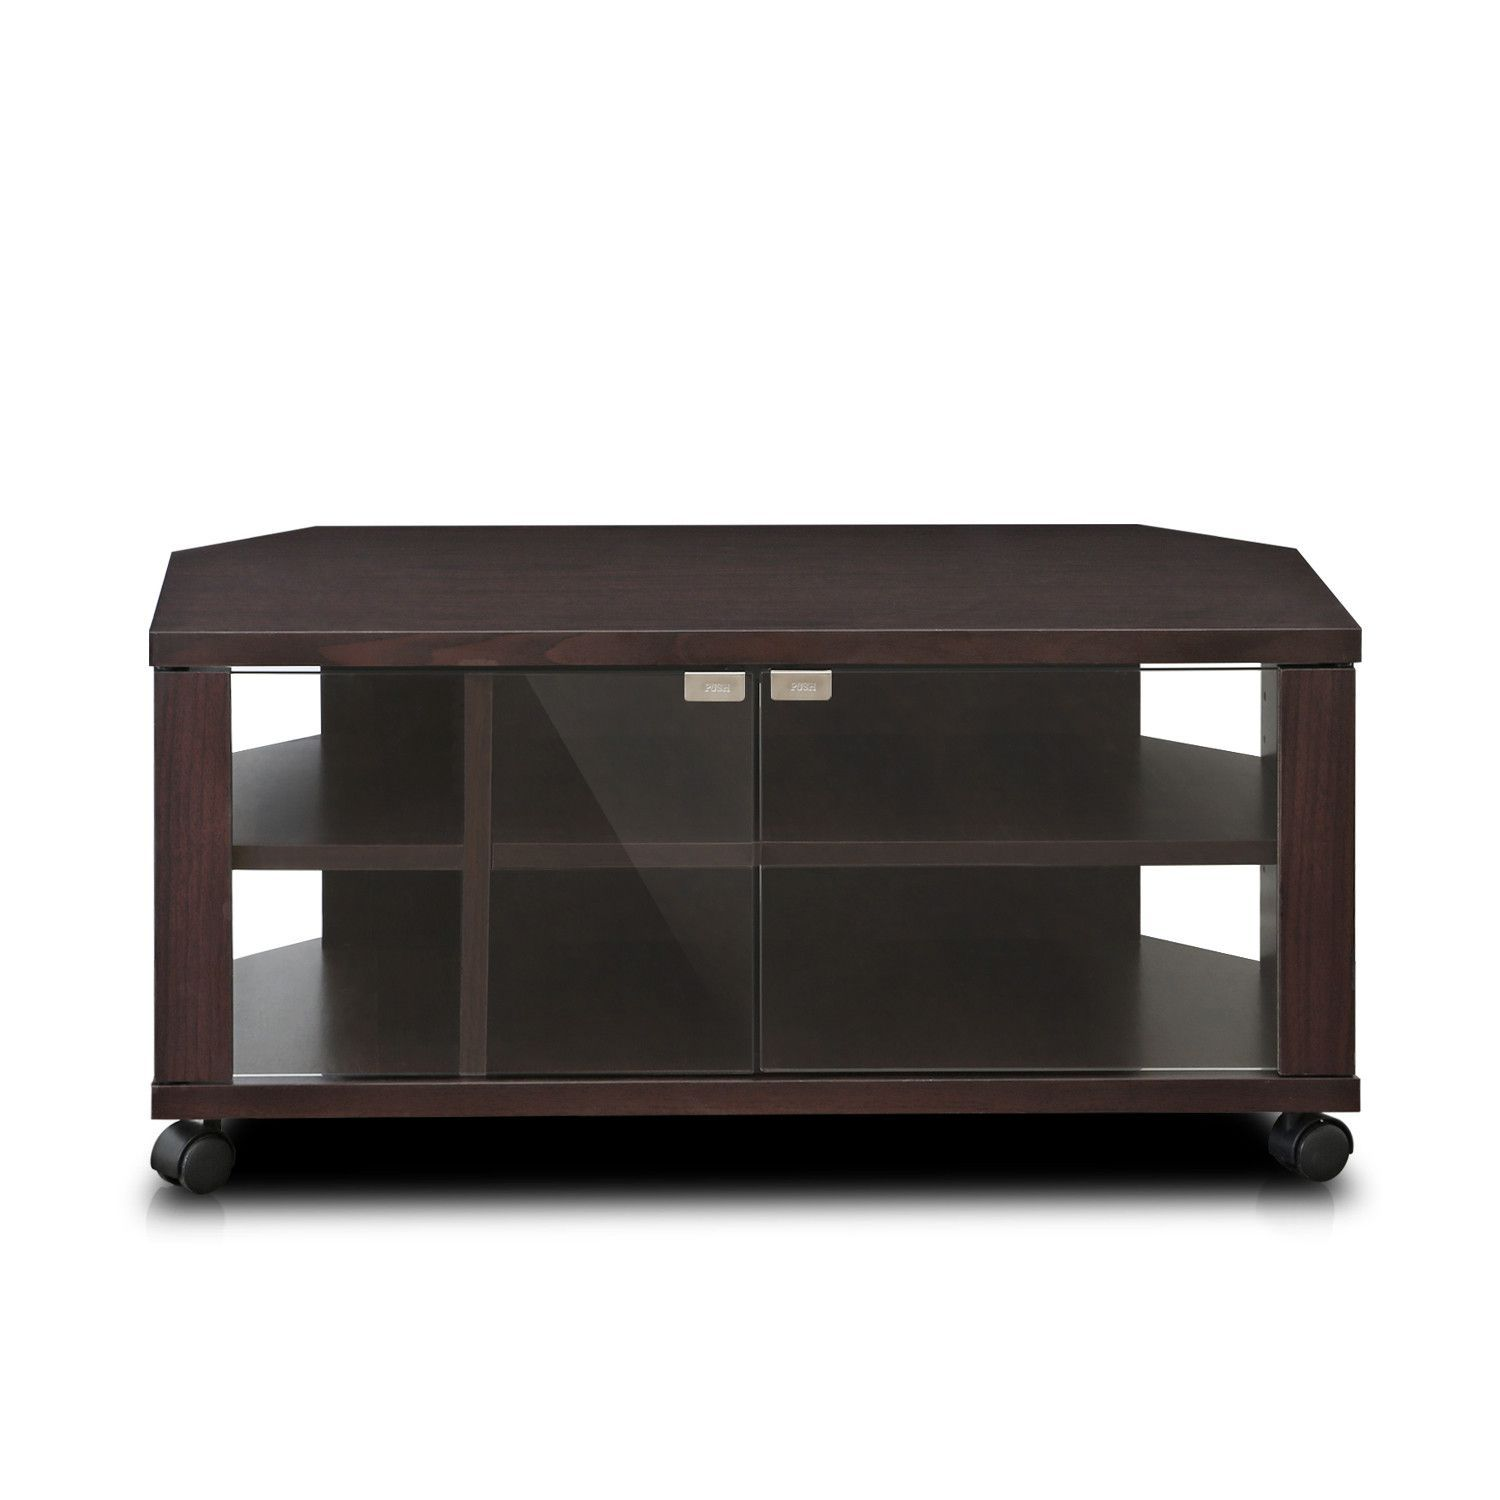 Tv Stand With Wheels Indo 2x2 Tv Stand With Double Glass Doors And Casters